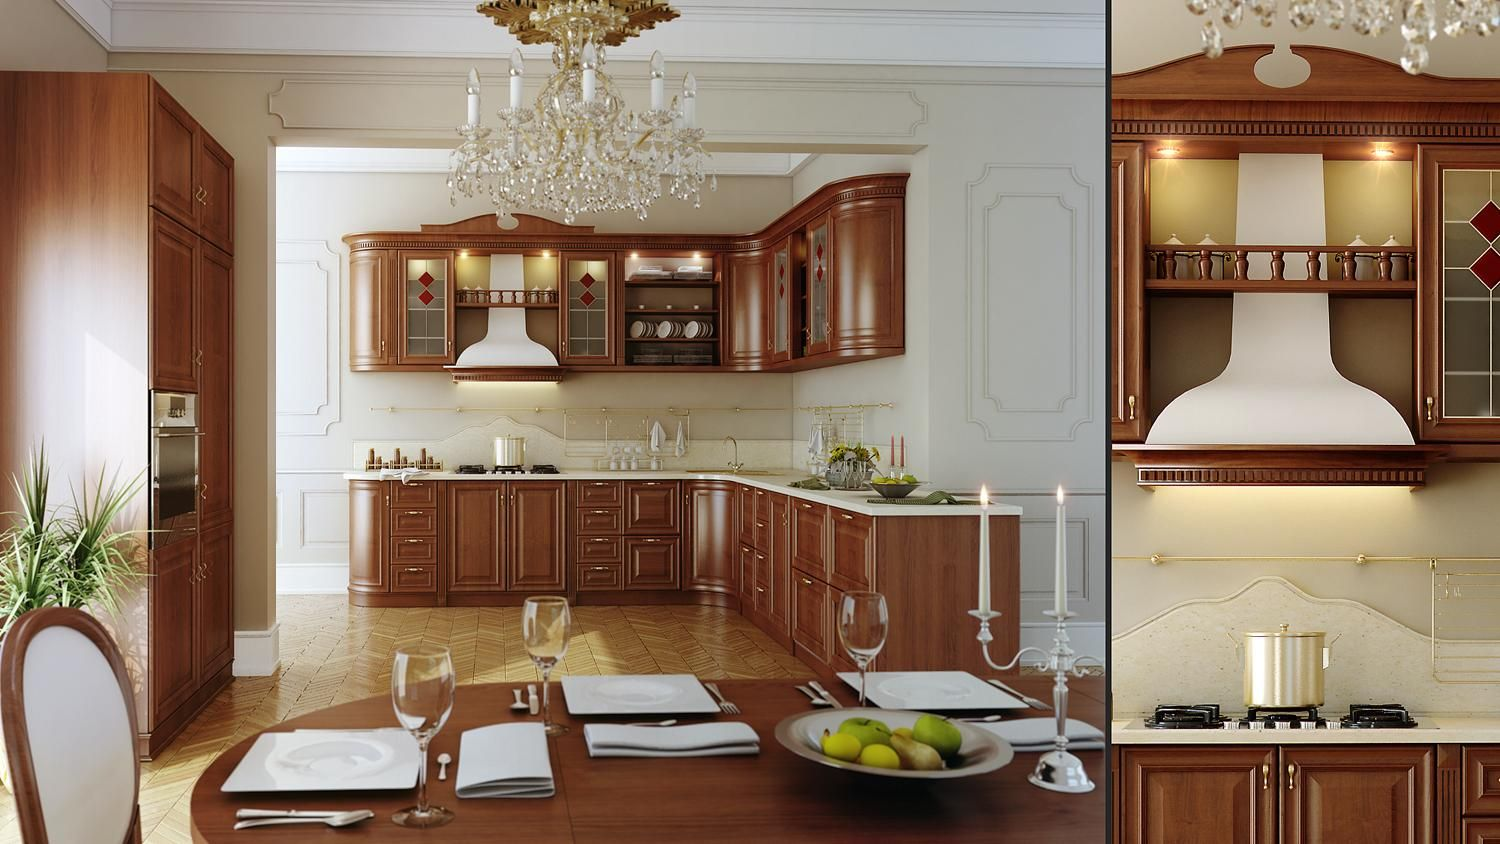 how to lay out a kitchen   the amazing design of the kitchen in brown color and white wall and white ceiling and brown table   niabai room wall decor room     making of realistic kitchen   3dsmax and vray   3ds max      rh   pinterest com